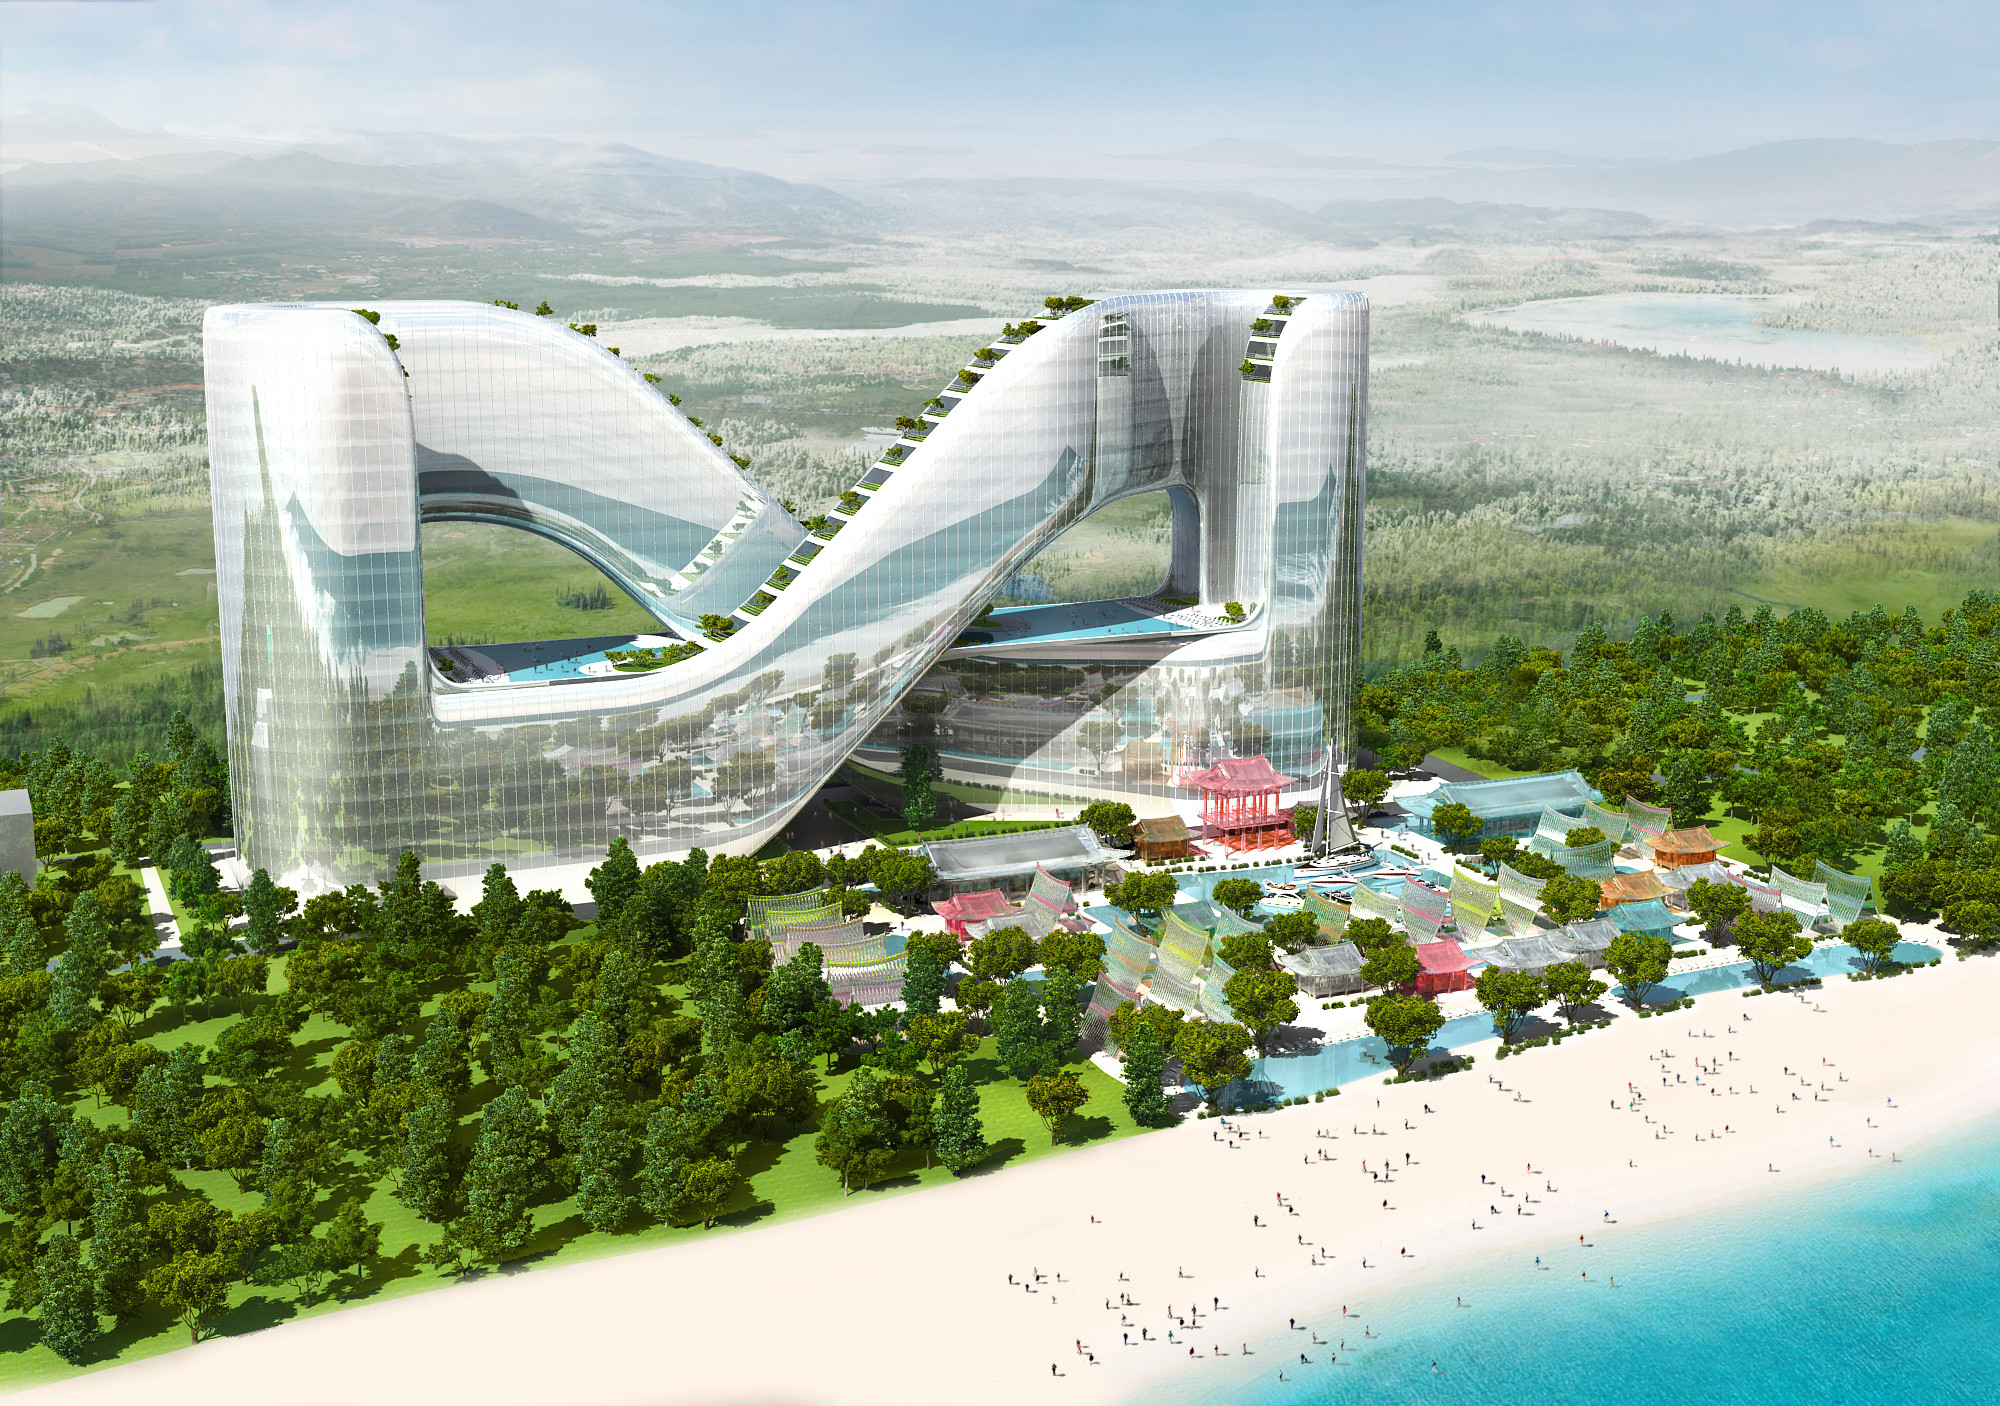 Gallery Of Planning Korea Designs Resort Hotel For Pyeongchang 2018 Winter Olympics 1